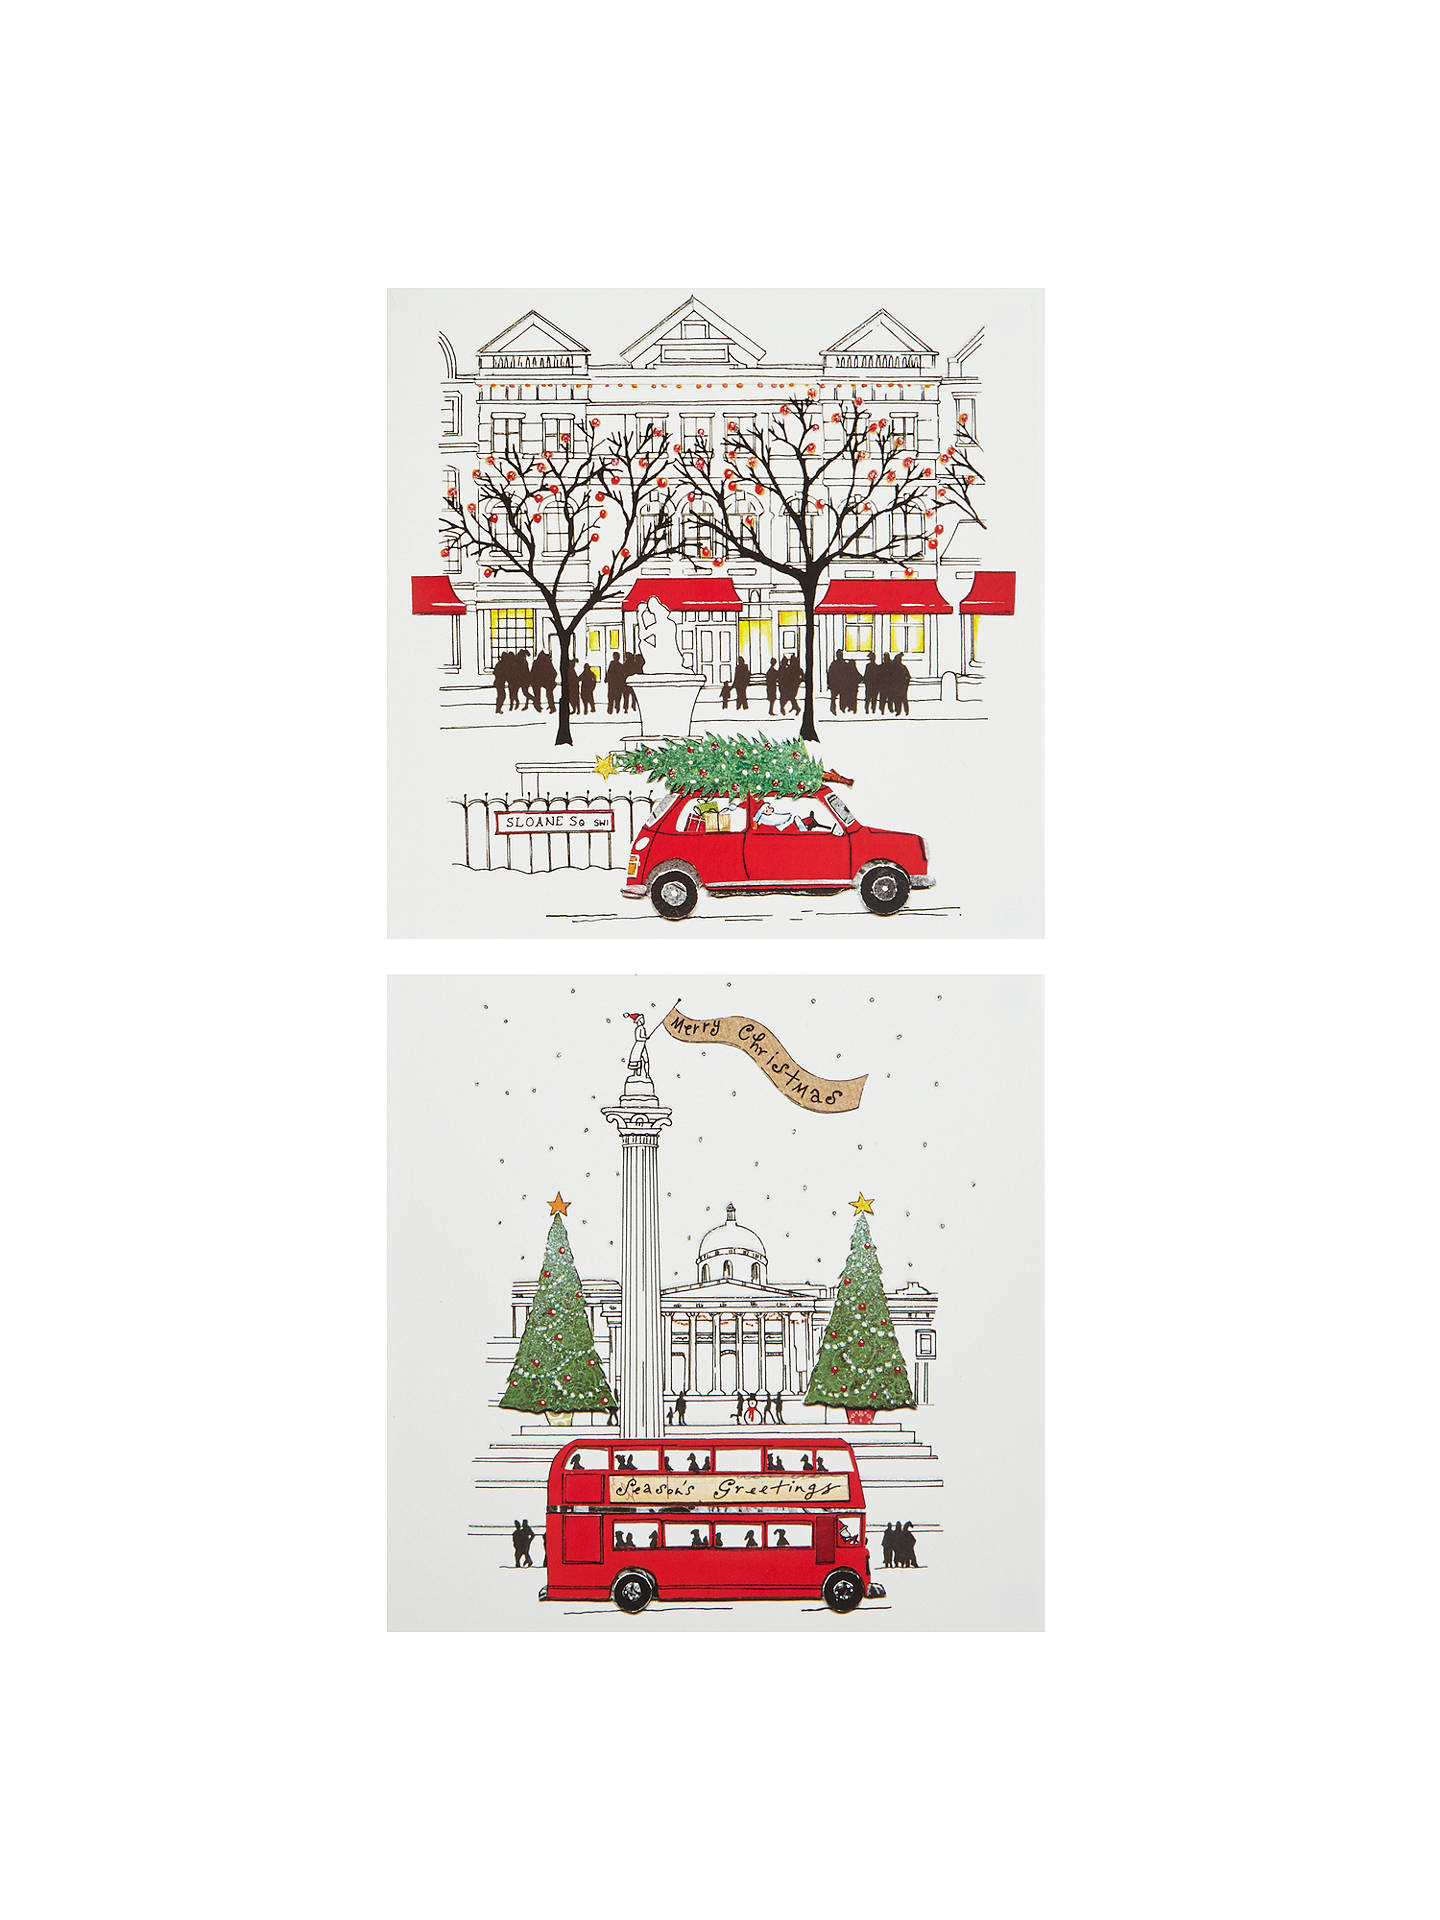 John Lewis Fsc Certified Large Charity Christmas Cards London Scenes Pack Of 10 At John Lewis Partners